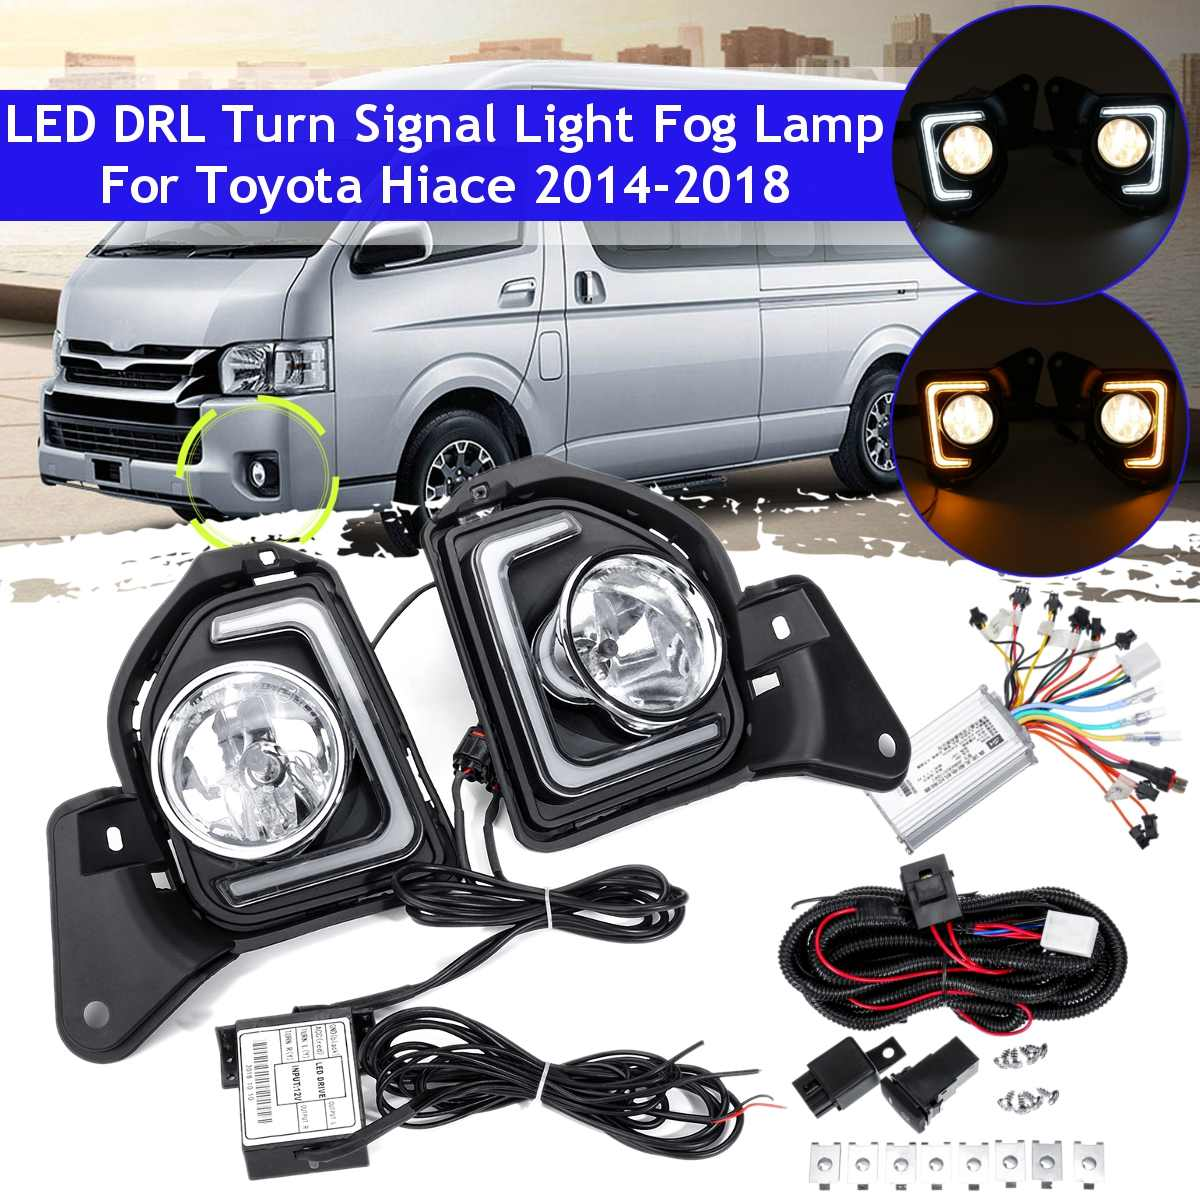 Led Drl With Halogen Fog Light For Toyota Hiace 2014 2015 2016 2017 2018 With Switch Harness Daytime Running Light Lamp Styling